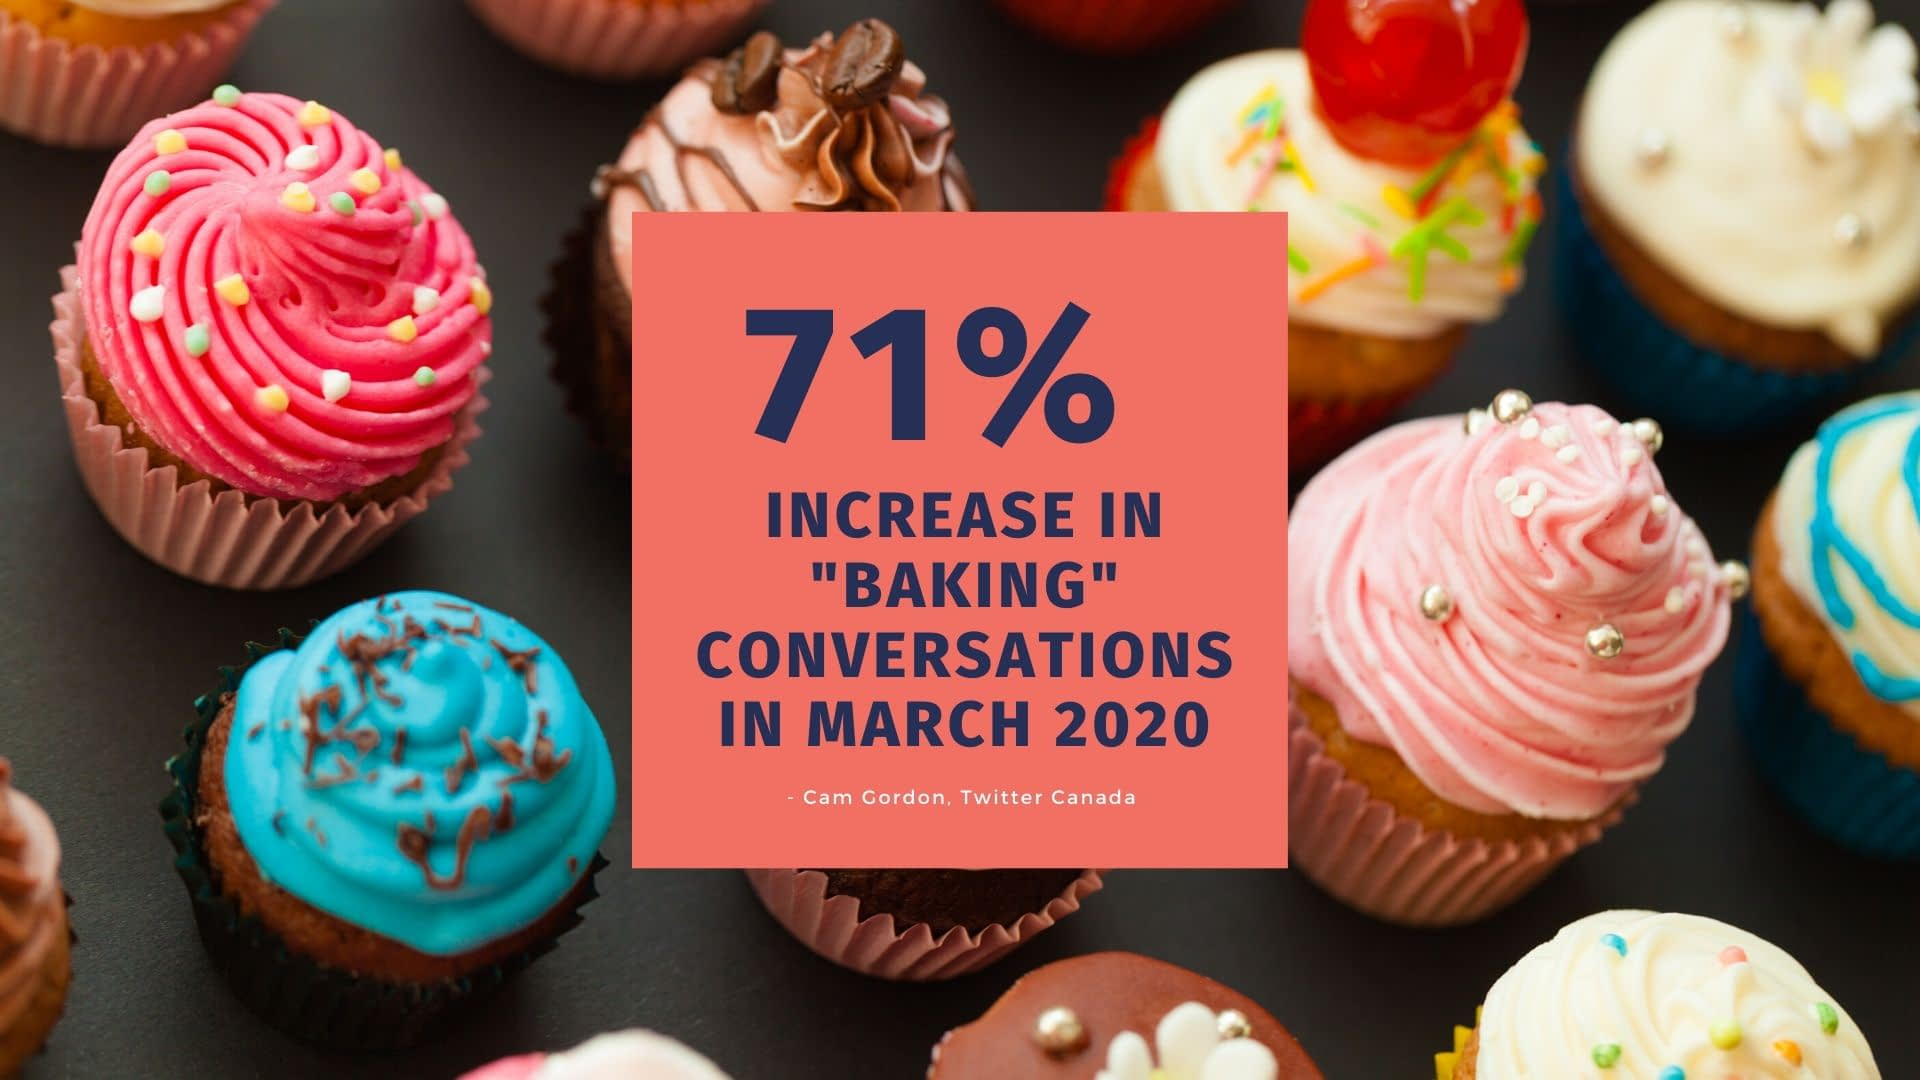 Copy-of-71-increase-in-Baking-Conversations